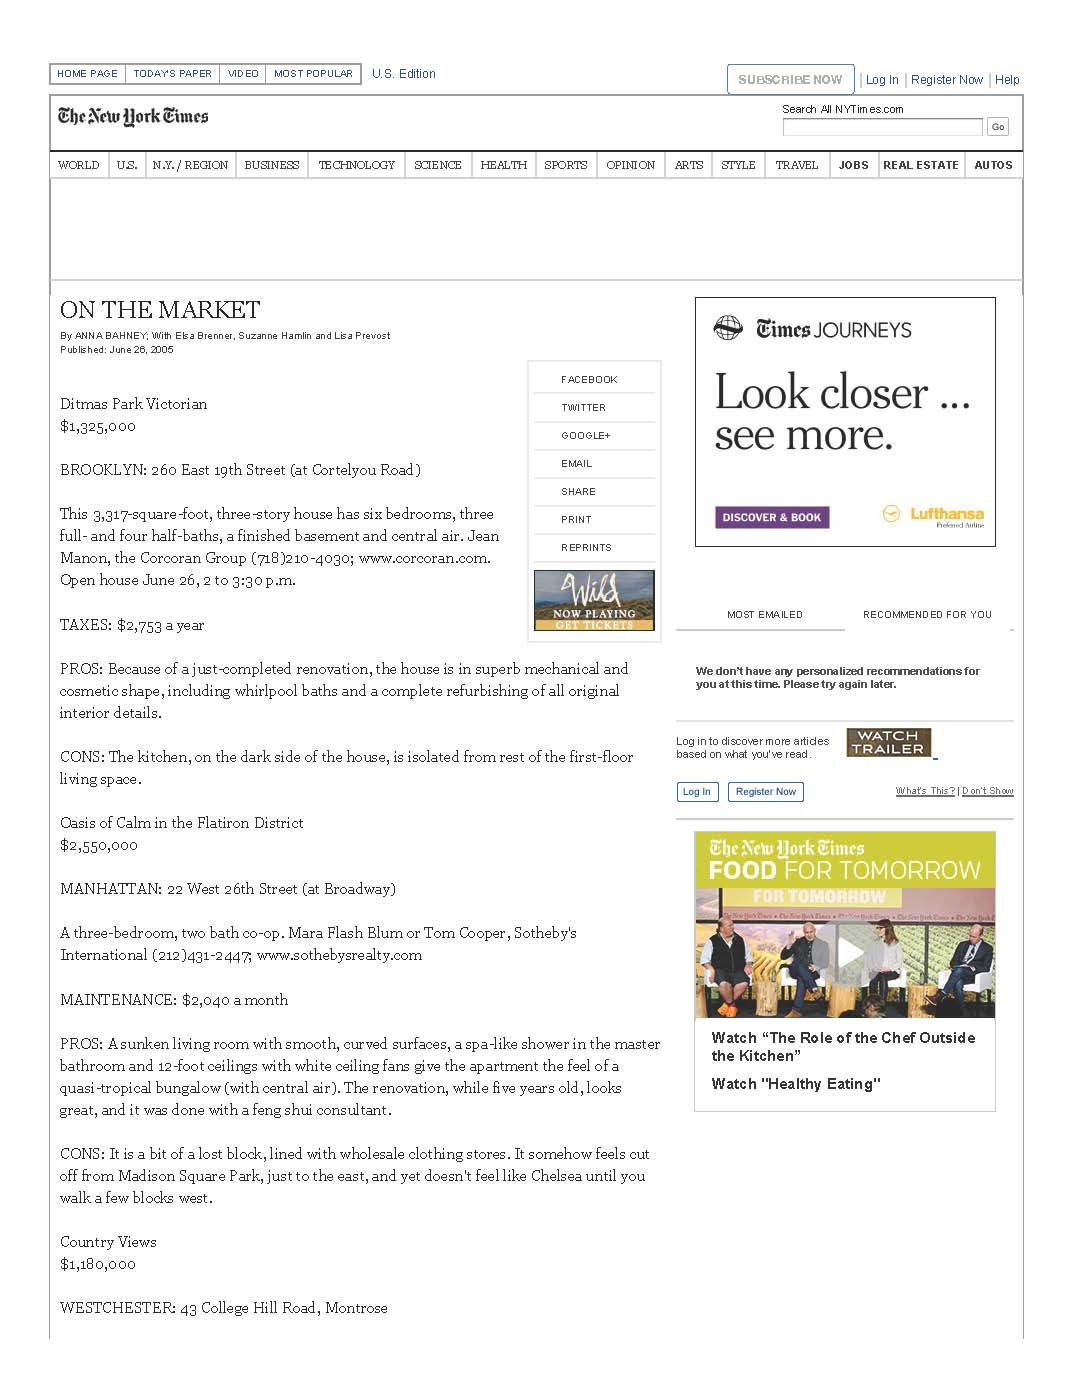 ON THE MARKET - NYTimes v2_Page_1.jpg